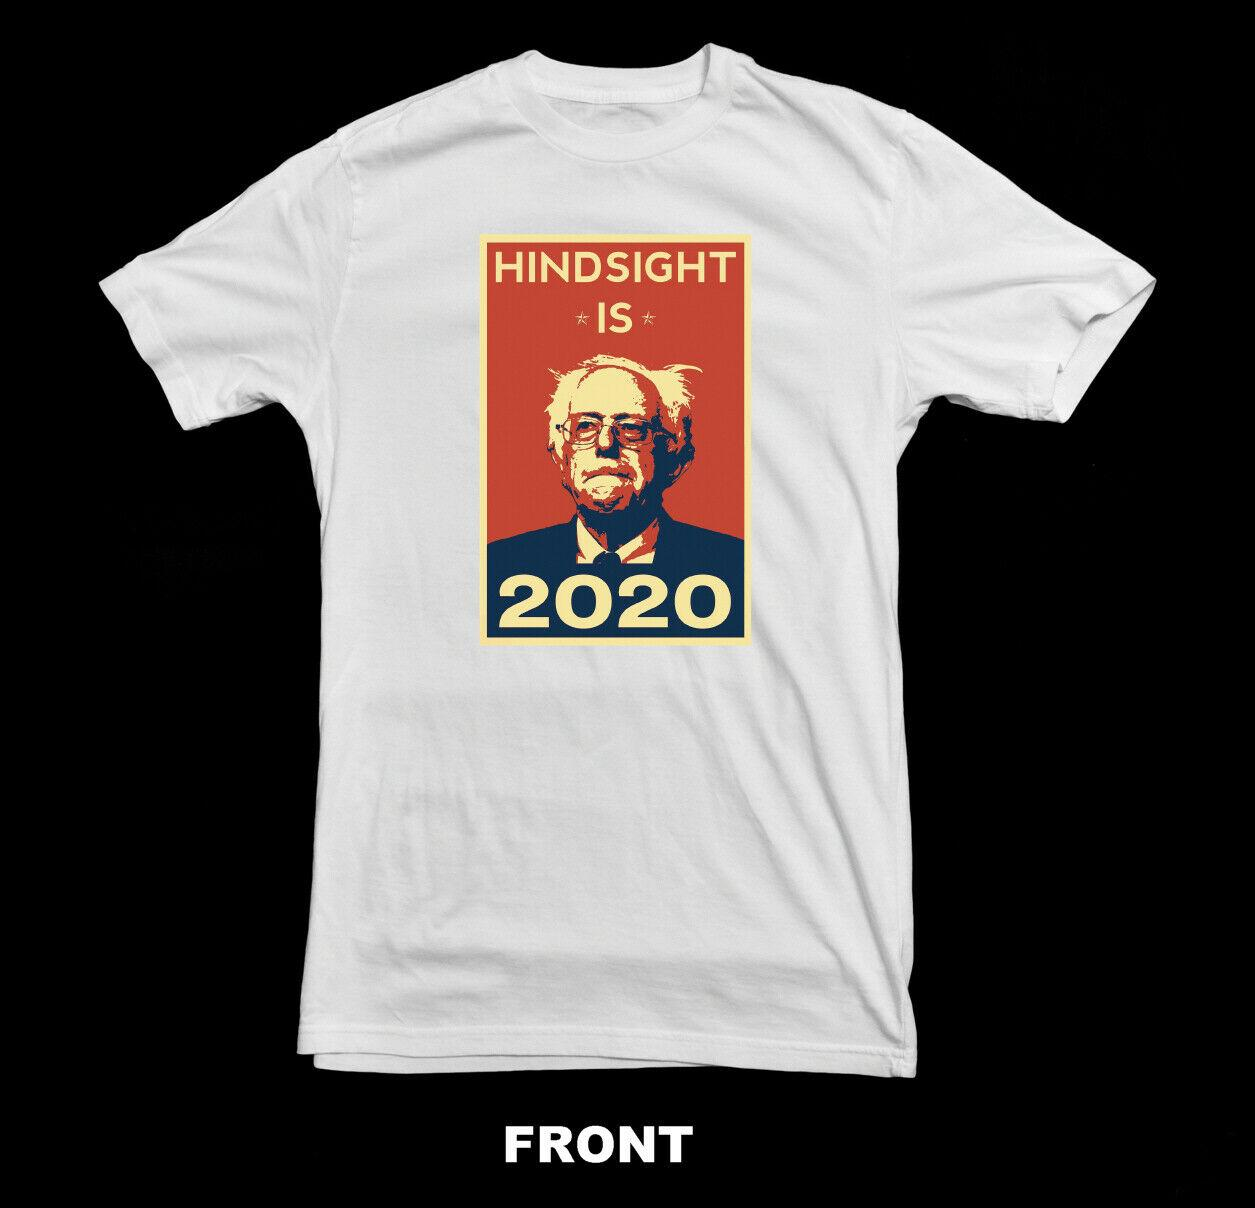 360f70e9f4 Bernie Sanders For President T Shirt | Hindsight Is 2020 | Bernie Sanders  2020 Funny Unisex Casual Tshirt Top Og T Shirt T Shrt From Thebestoree, ...